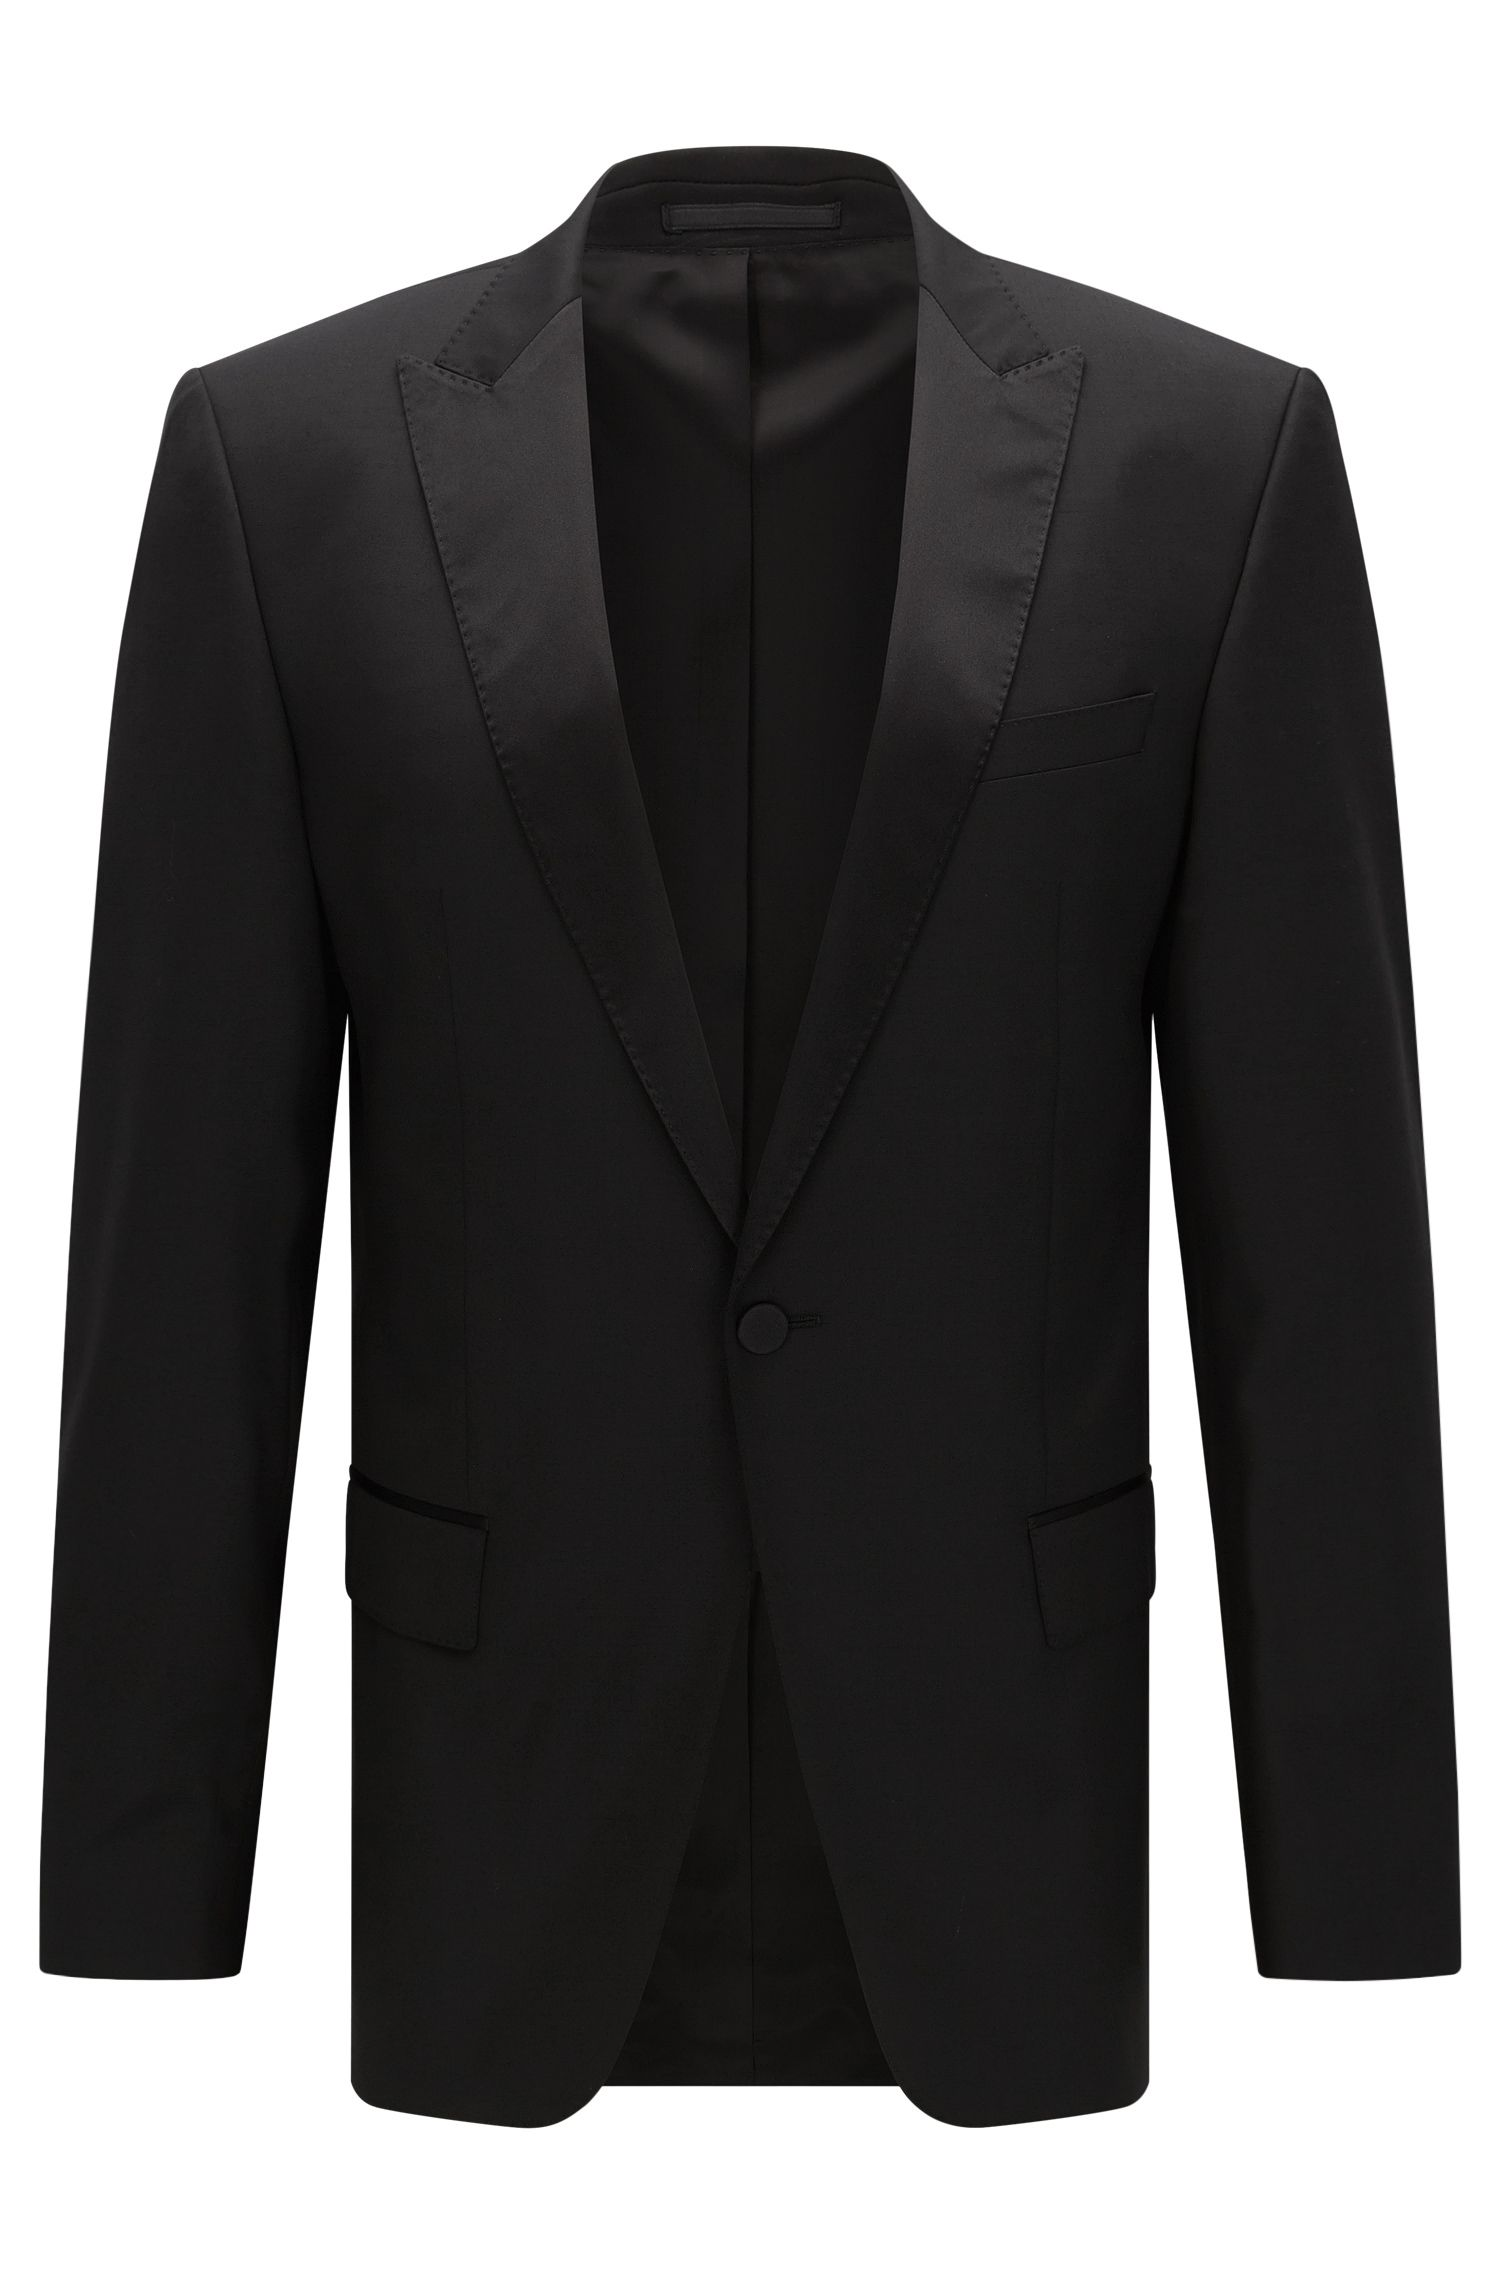 Virgin Wool Tuxedo, Slim Fit | Housten/Glorious, Black